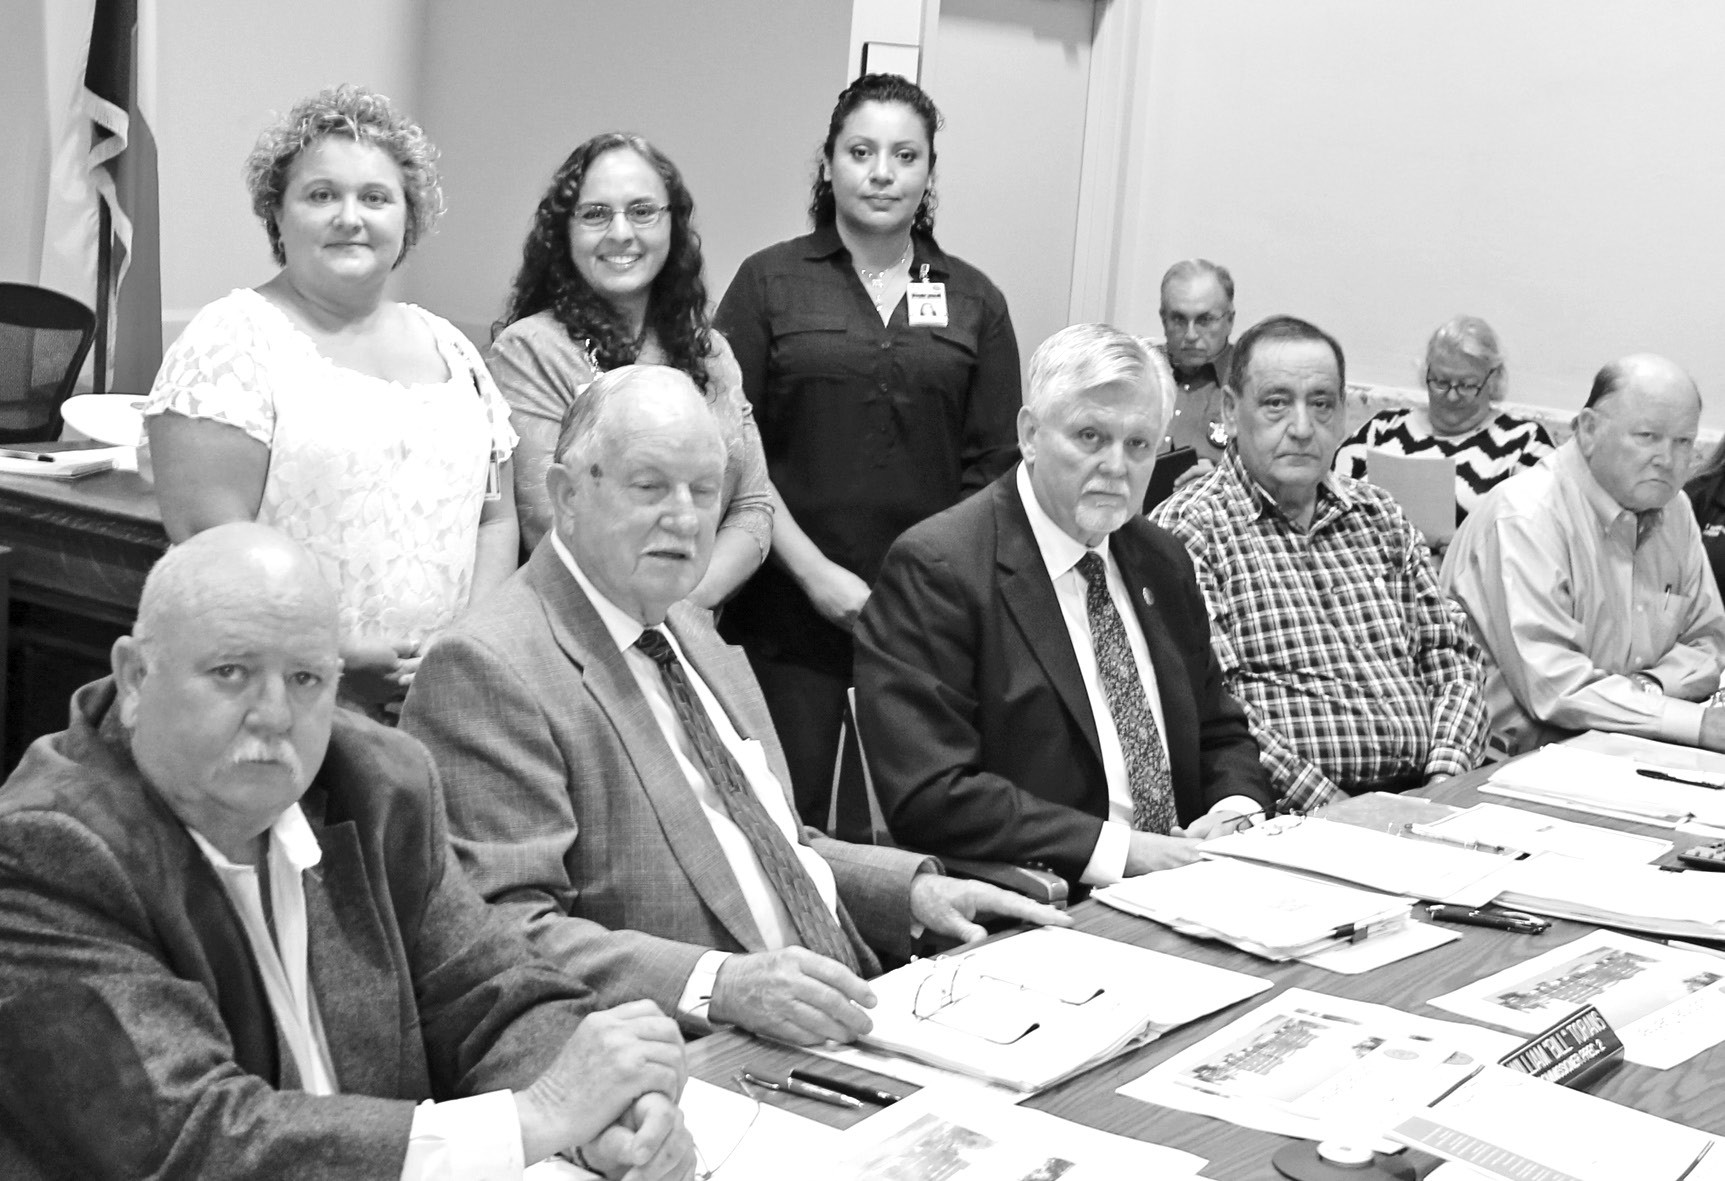 Atascosa County Health Services reported on services provided in 2015 during the Commissioners' Court meeting Monday, April 11. Standing, from left, are Monica Gwosdz, DSHS; Sandra Calvillo, human services technician and Cecilia Pettitzn, DSHS. Seated are Comm. Lonnie Gillespie, Pct. 1; Comm. Bill Torans, Pct. 2; Atascosa County Judge Bob Hurley; Comm. Freddie Ogden, Pct. 3; and Comm. Bill Carroll, Pct. 4.